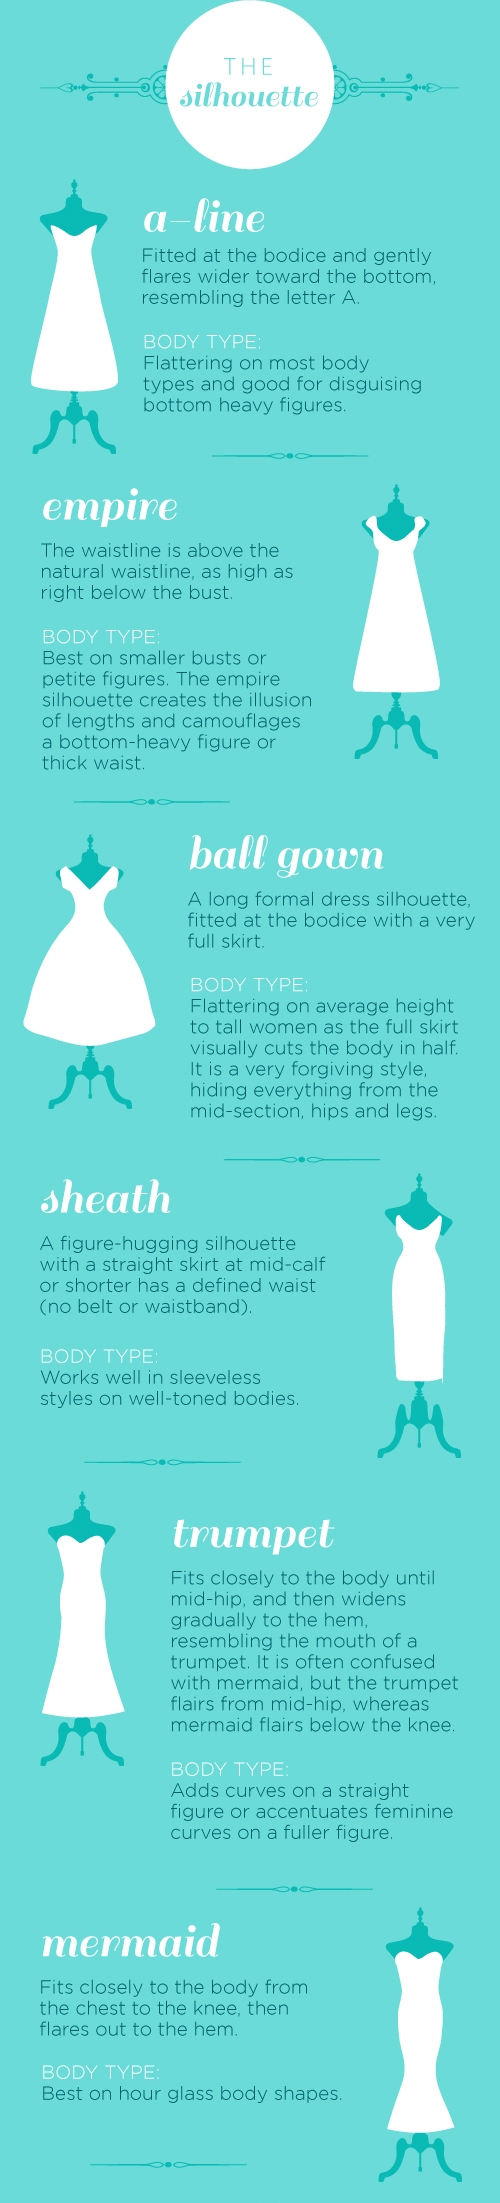 The different wedding dress silhouettes